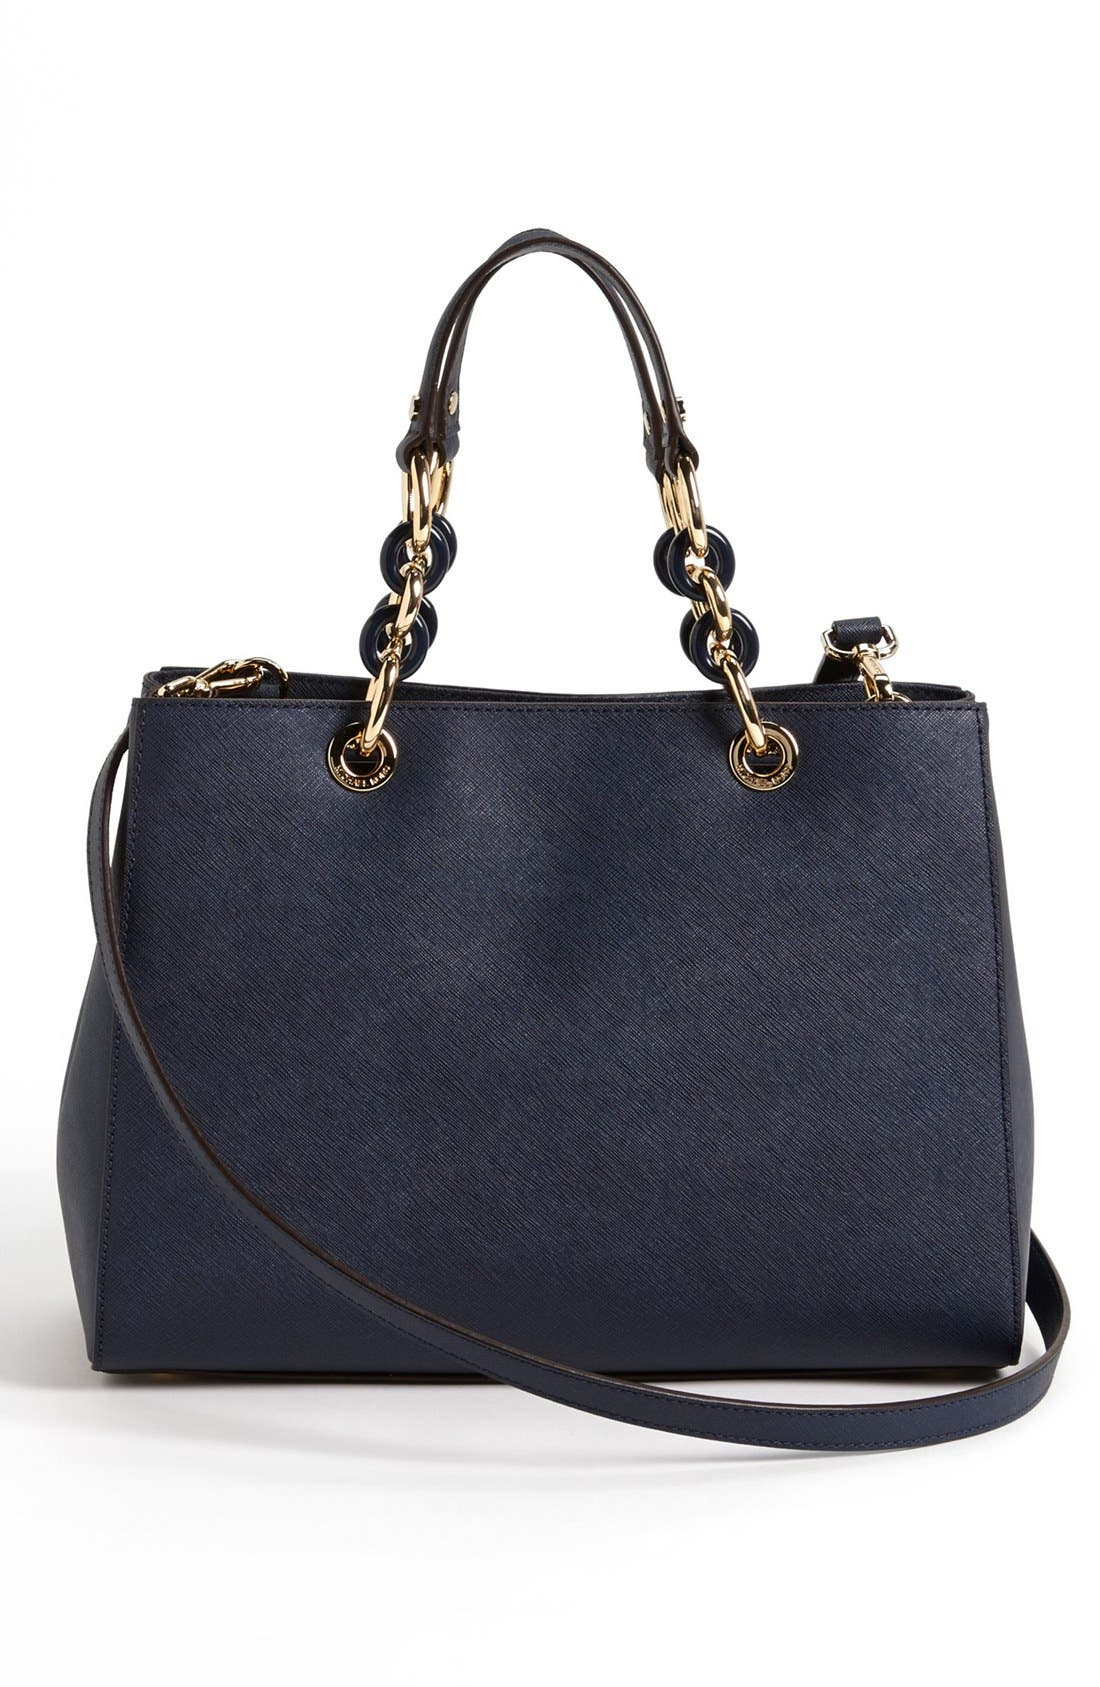 Alternate Image 3  - MICHAEL Michael Kors 'Cynthia' Saffiano Leather Satchel